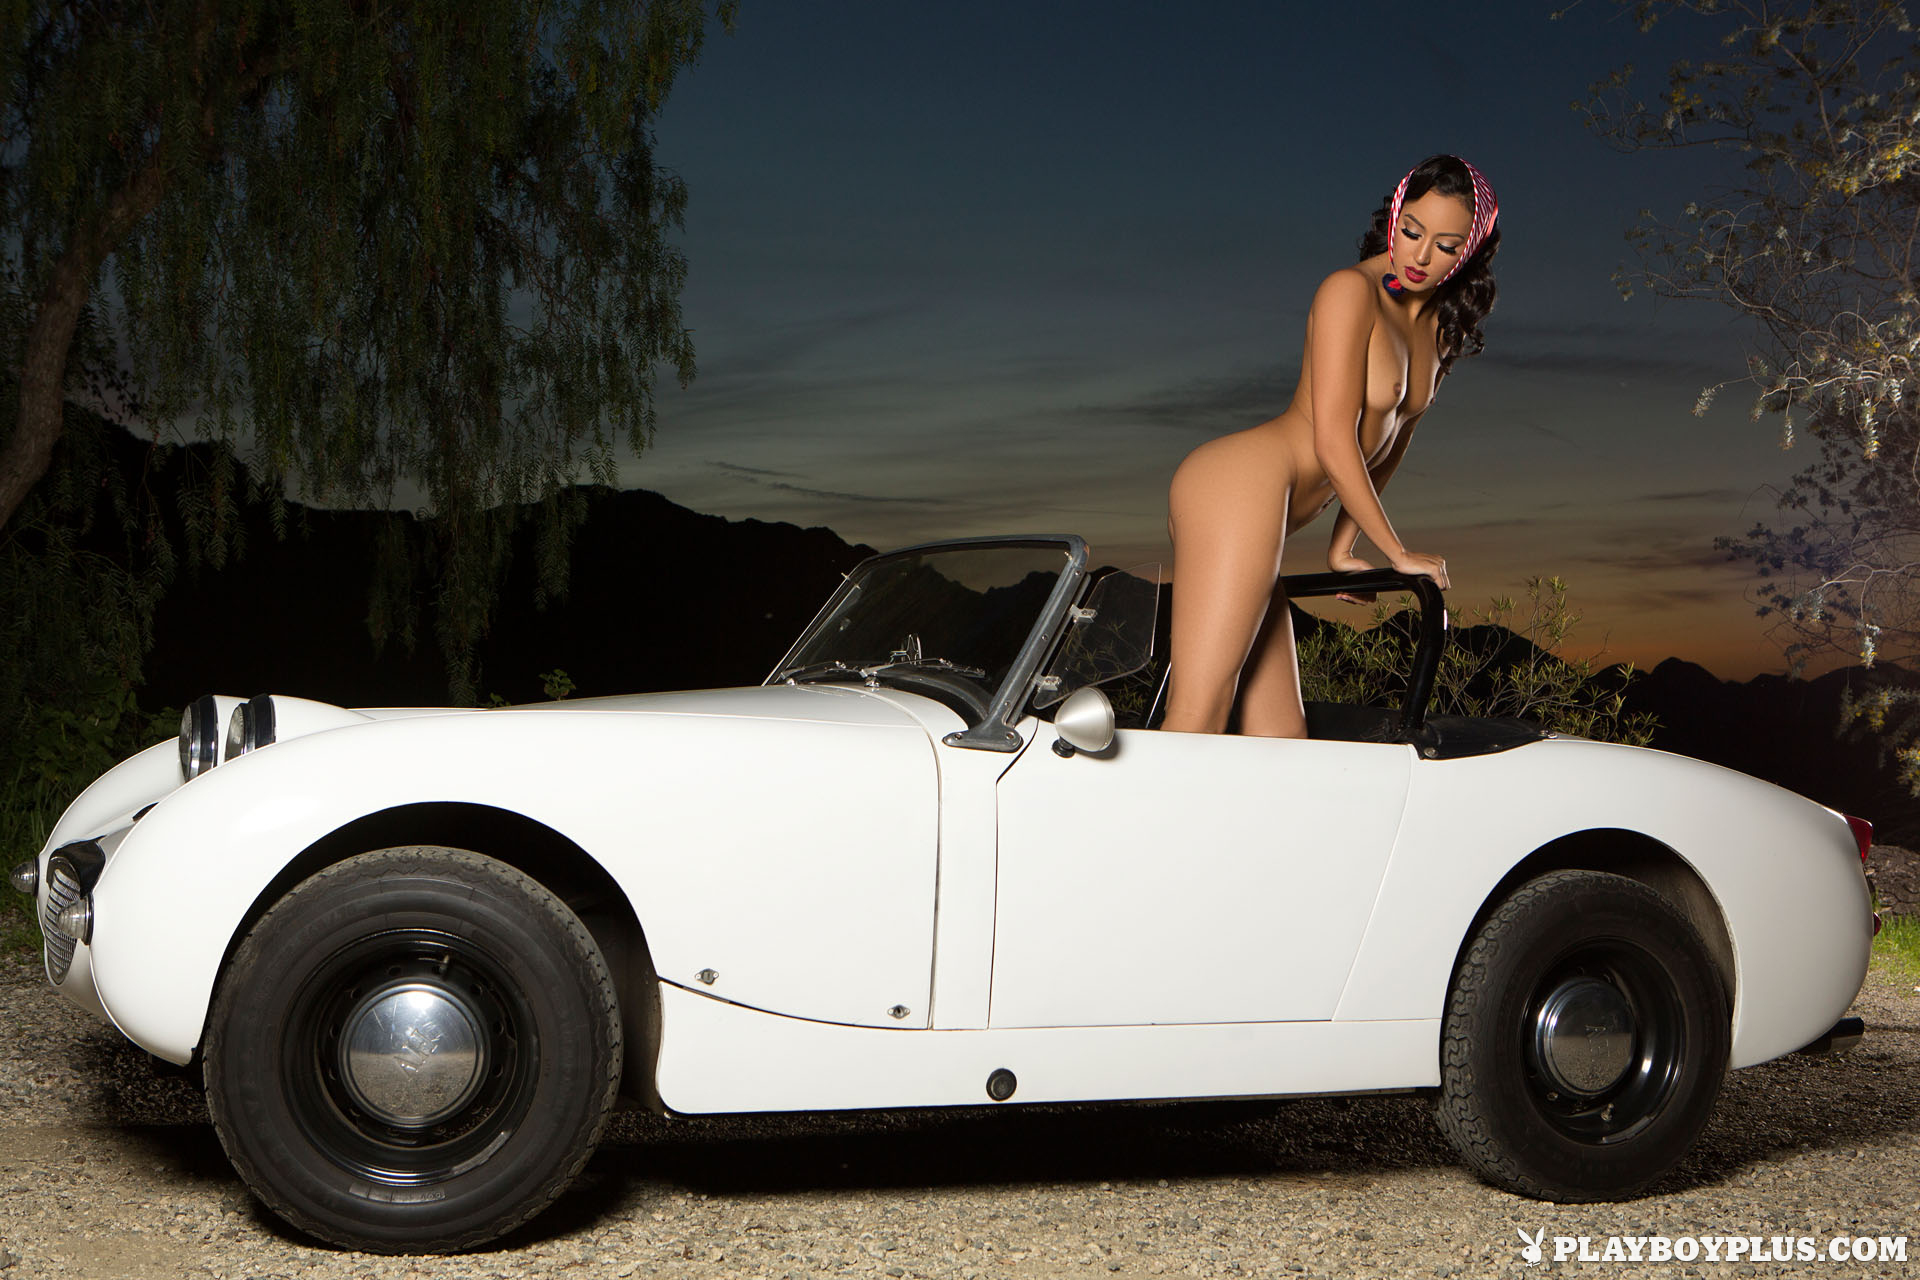 alexandra-young-austin-healey-sprite-small-tits-playboy-25